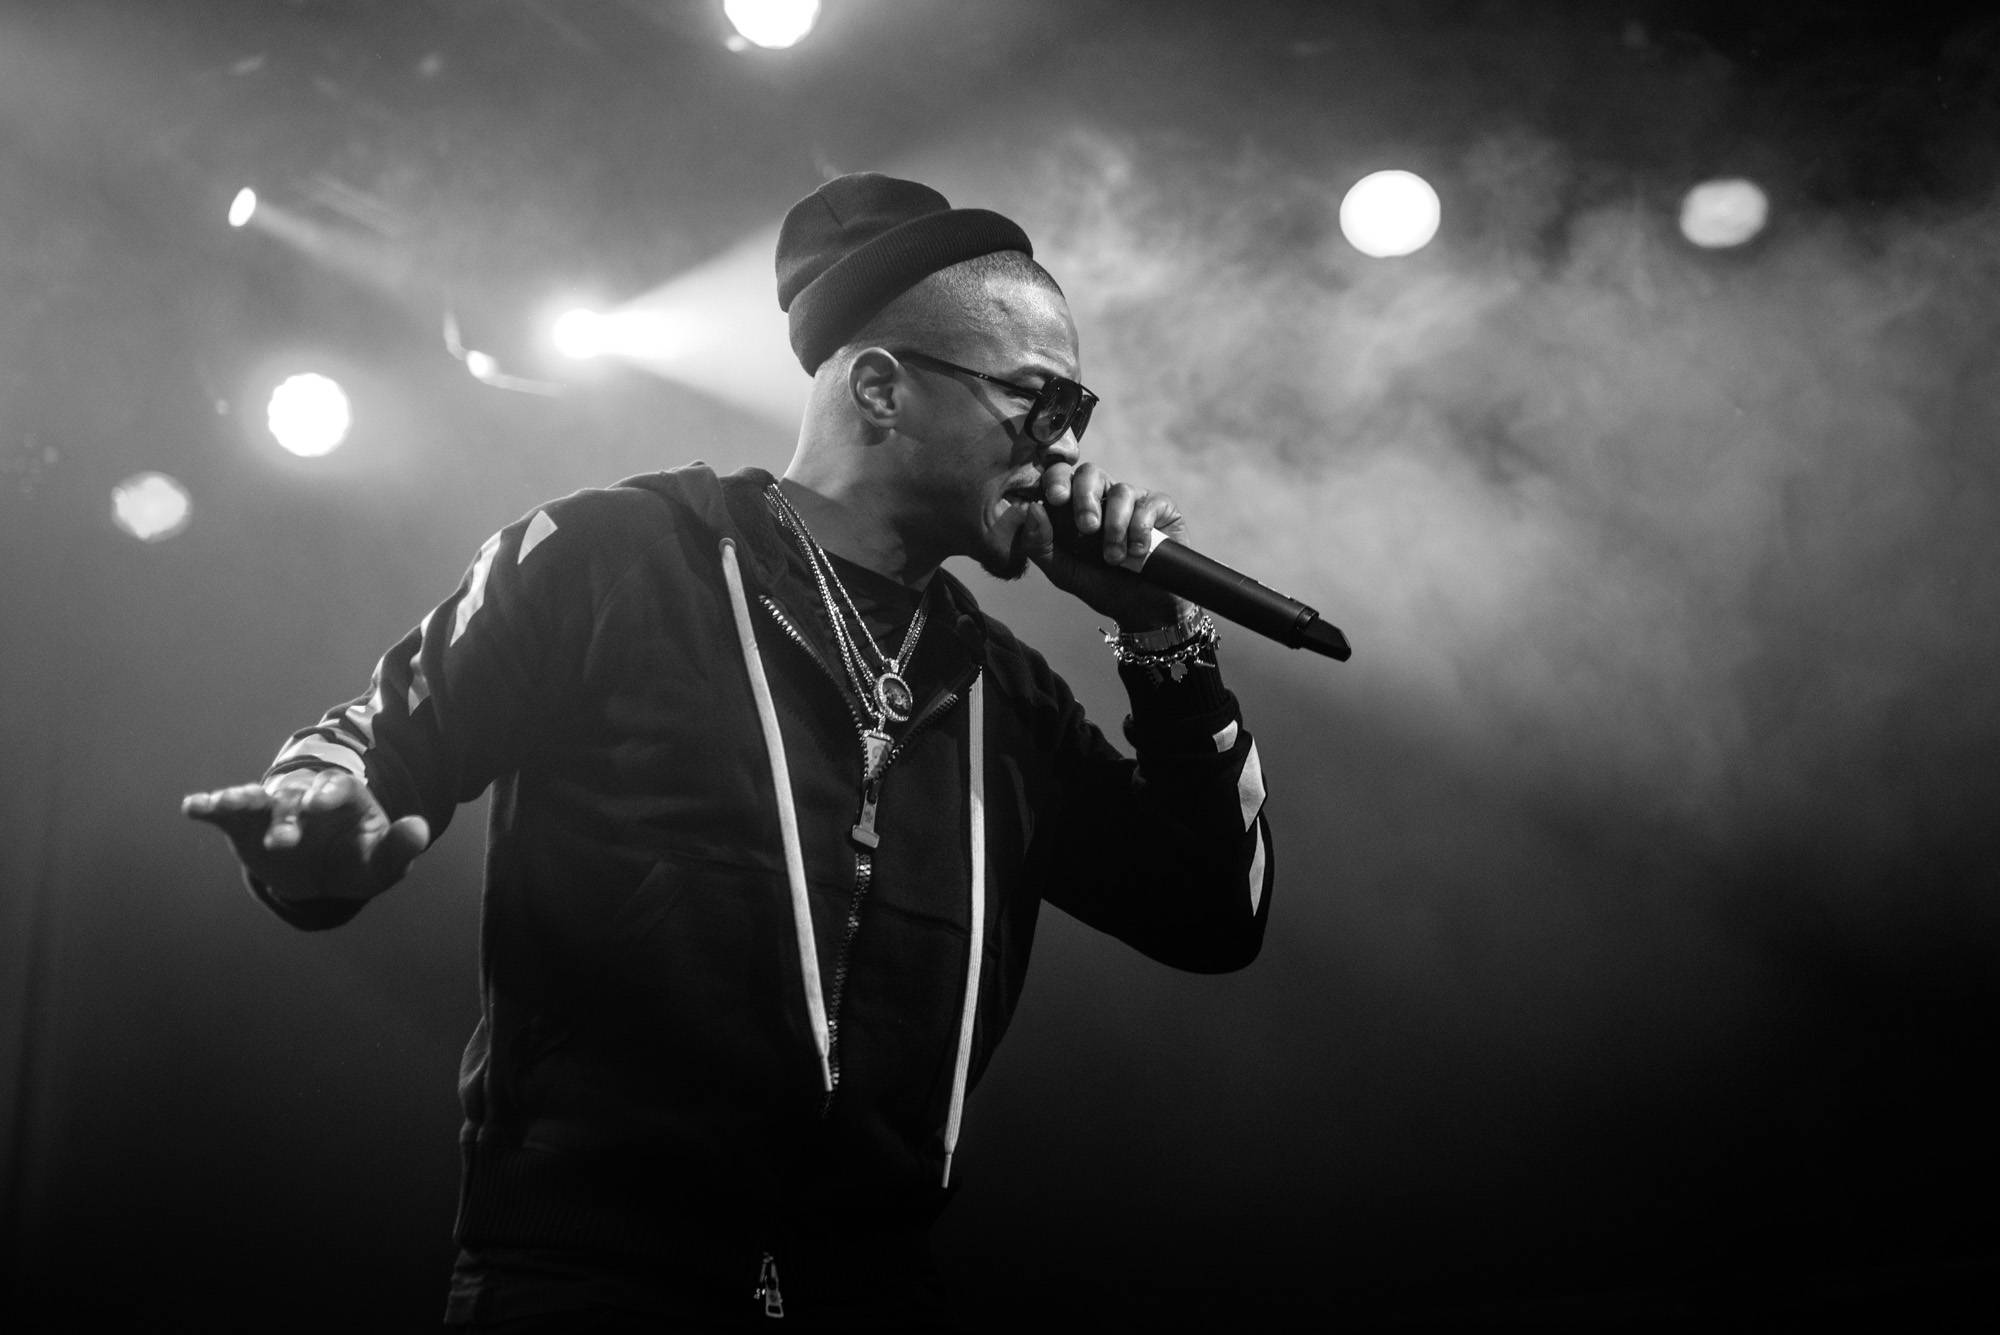 T.I. at the Commodore Ballroom, Vancouver, Jan. 12 2017. Jason Martin photo.